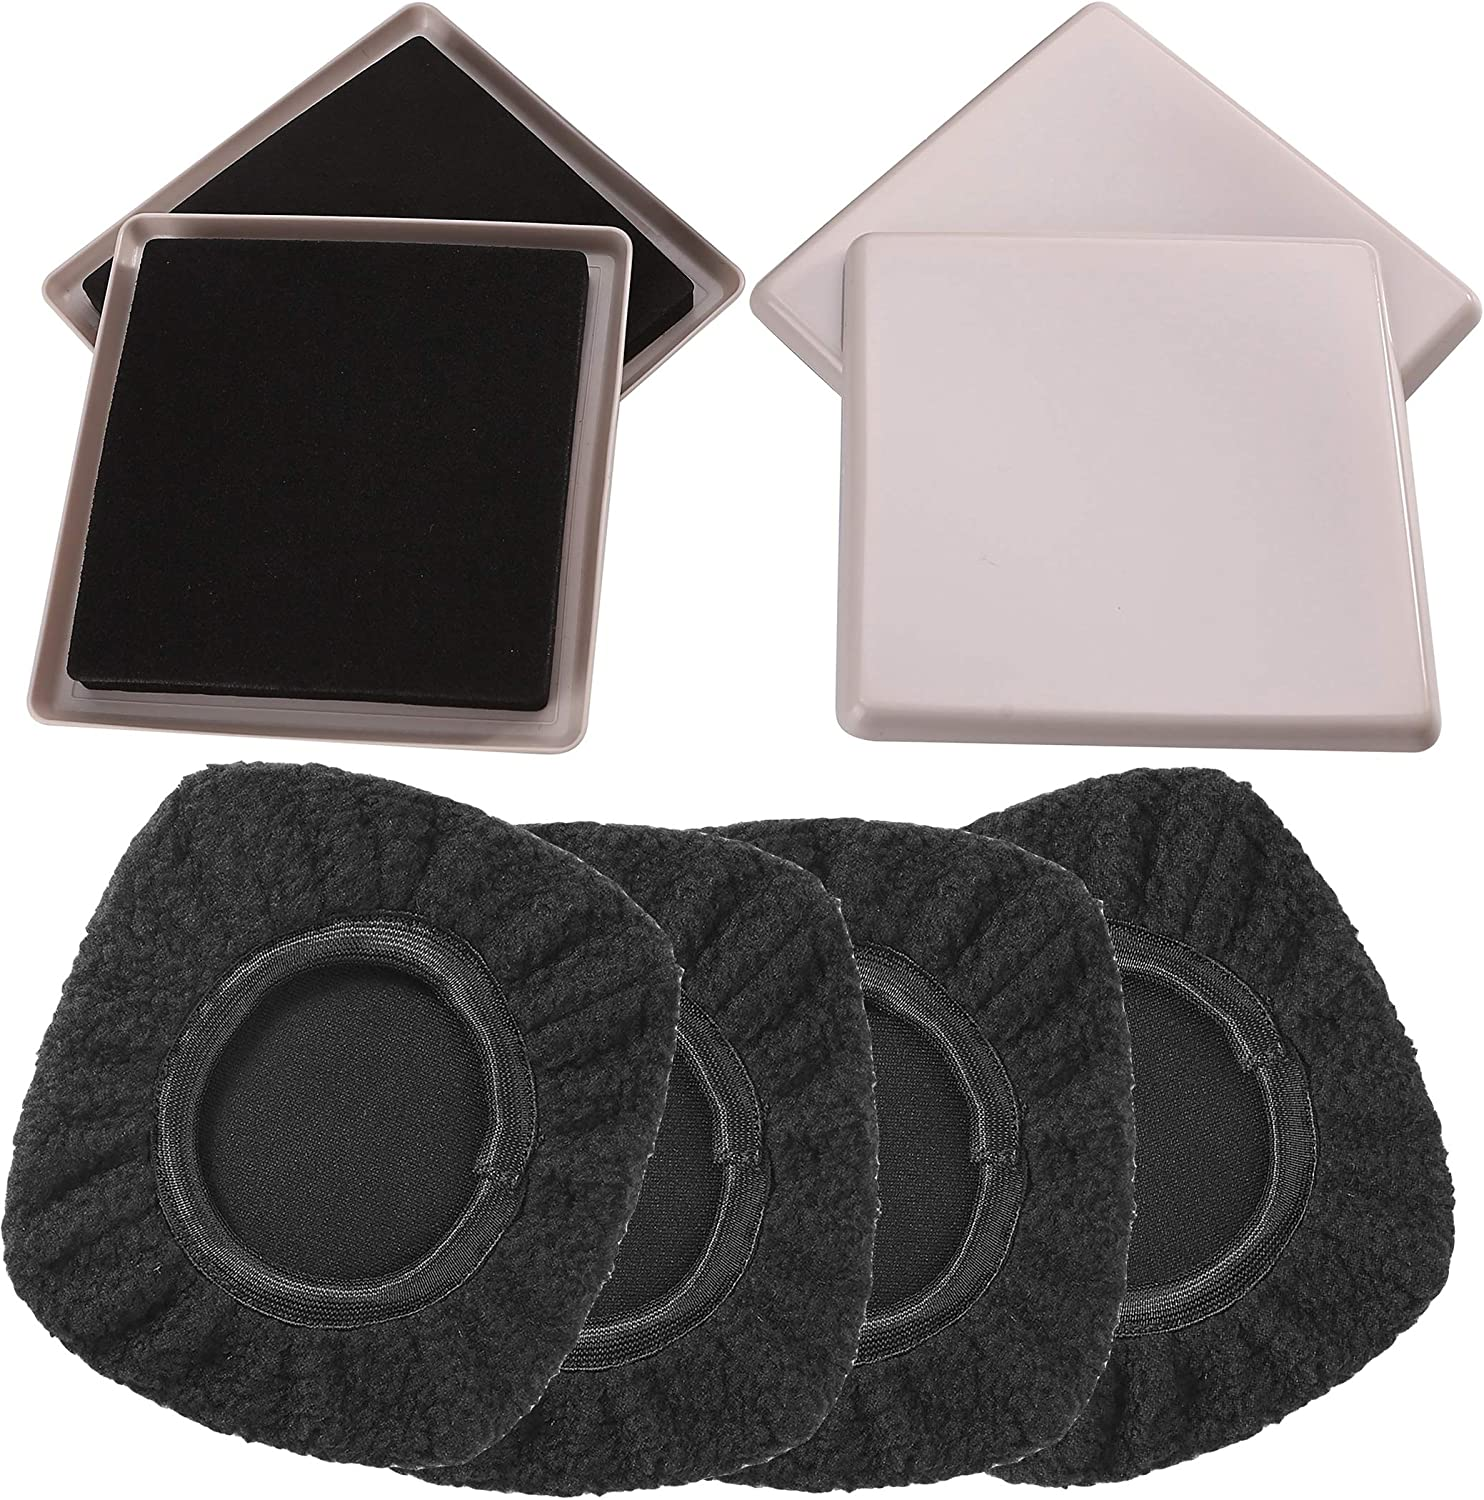 """Multi-Surface 2-in-1 Reusable Furniture Carpet Sliders with Hardwood Socks- Protect & Slide on Any Surface 5"""" Black (4 Pack)"""